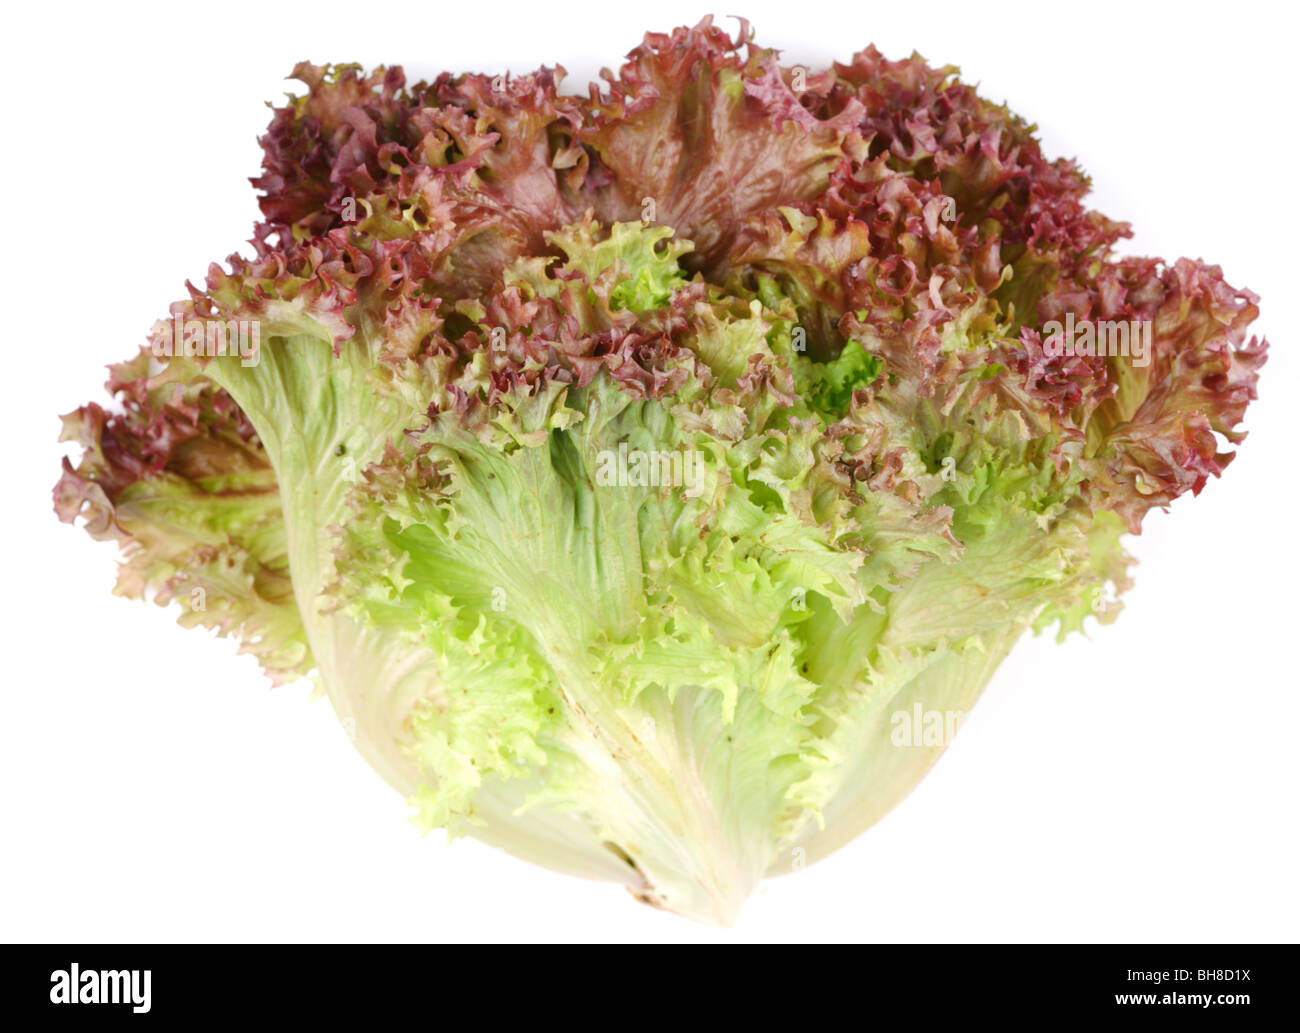 bunch lettuce leaves on a white background - Stock Image